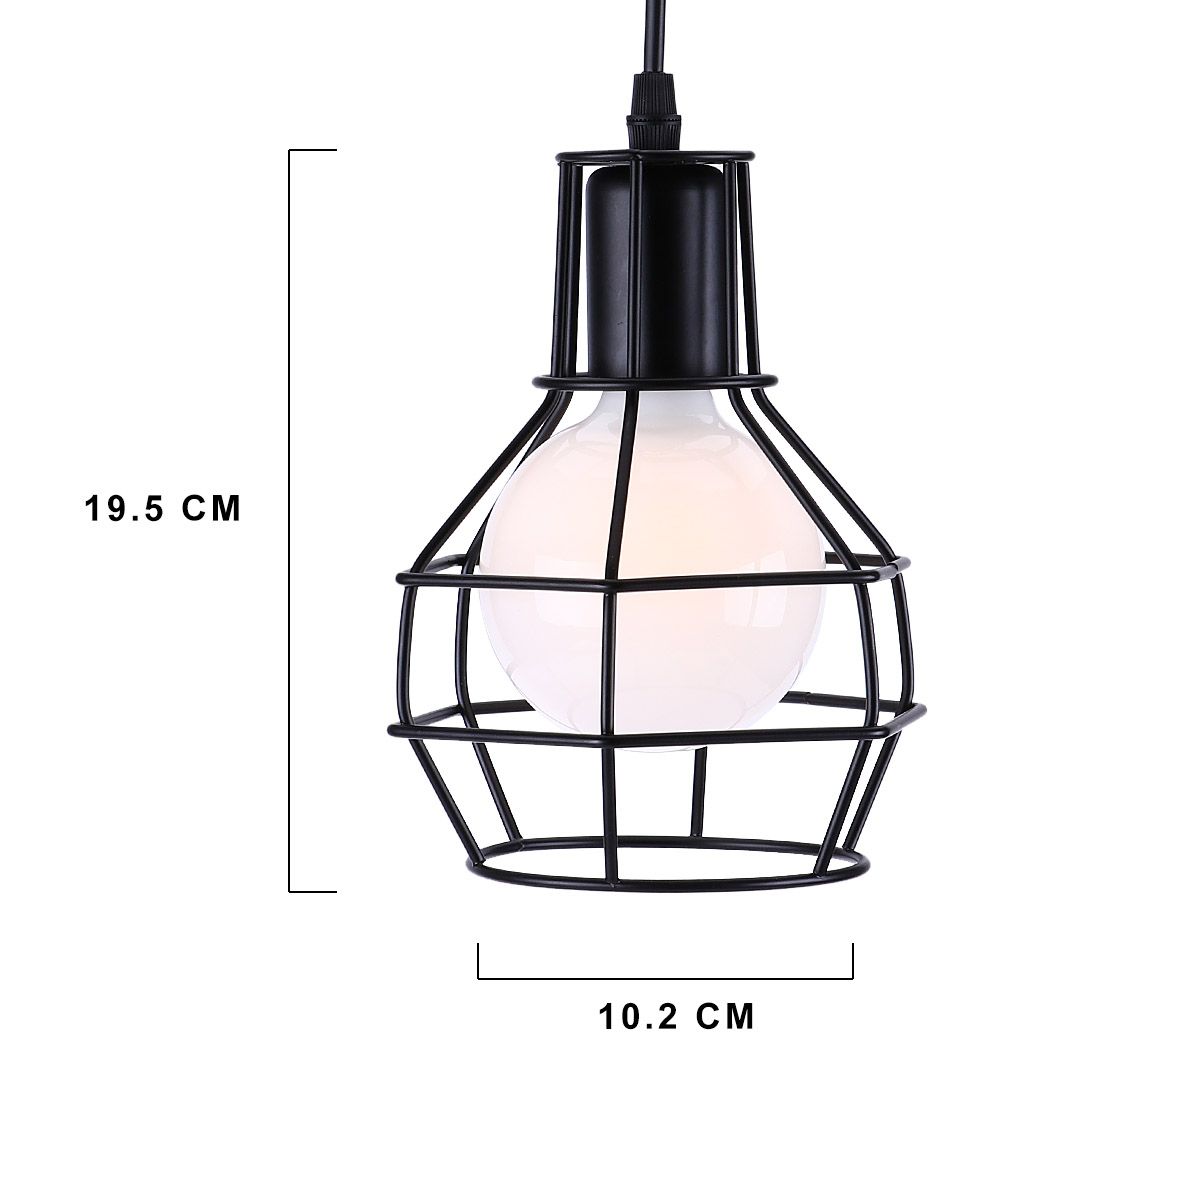 KAWELL Creative Vintage Pendant Light Industrial Retro Chandelier E27 Base Iron Cage Lampshade for Cafe, Restaurant, Study, Kitchen, Loft, Bar, Bedroom, Black